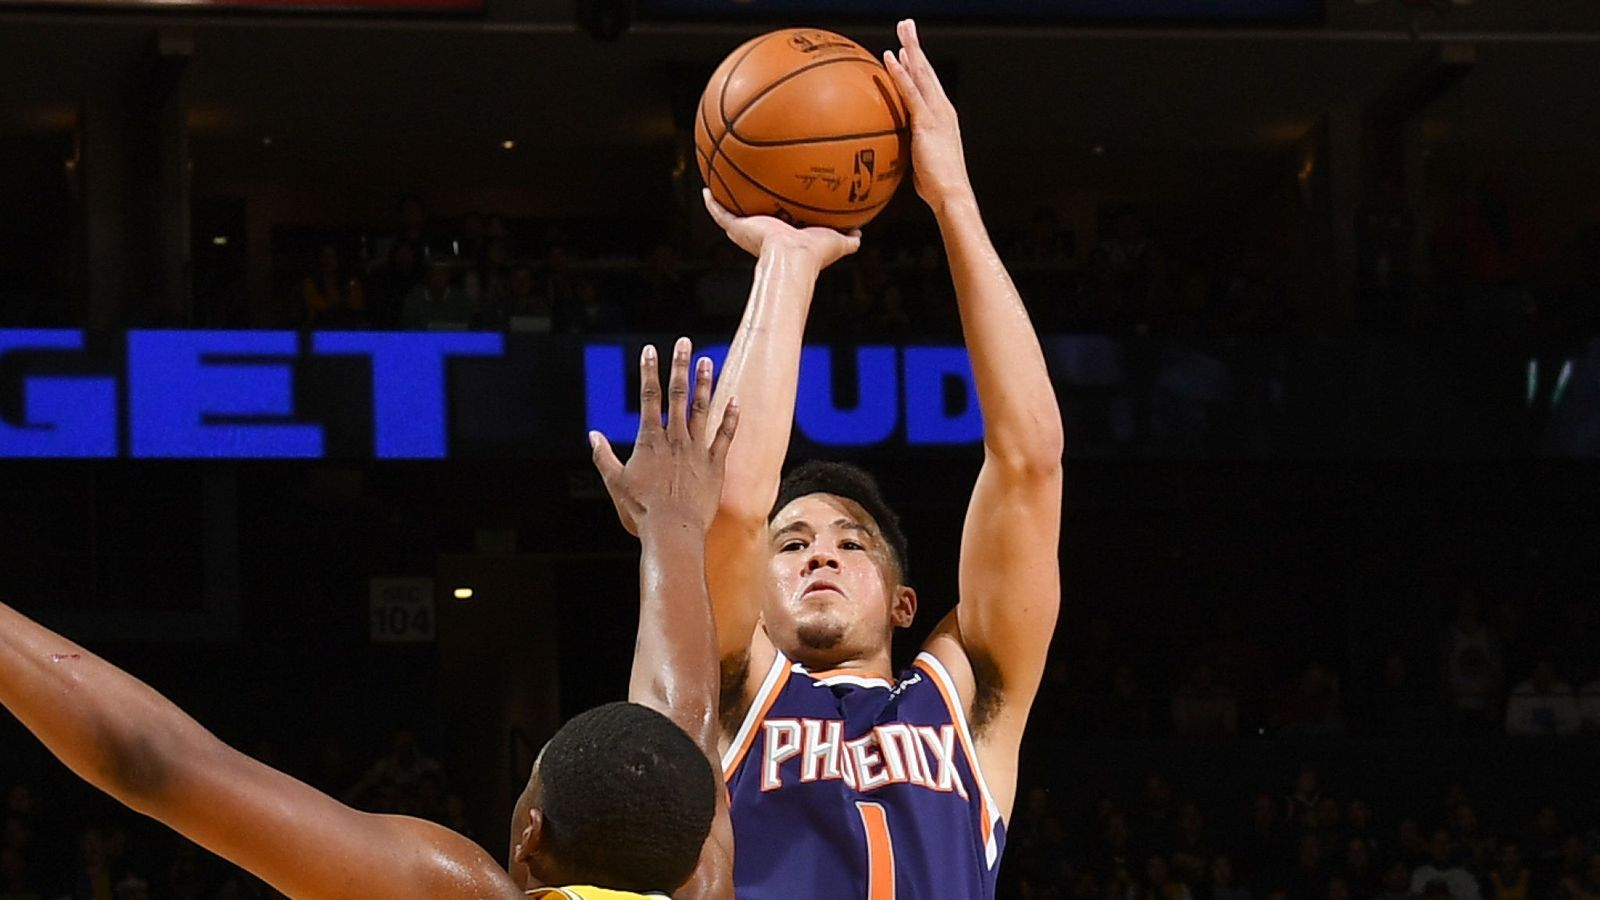 Devin Booker Stars With 37 Points In Phoenix Suns Victory - Basketball Moves , HD Wallpaper & Backgrounds